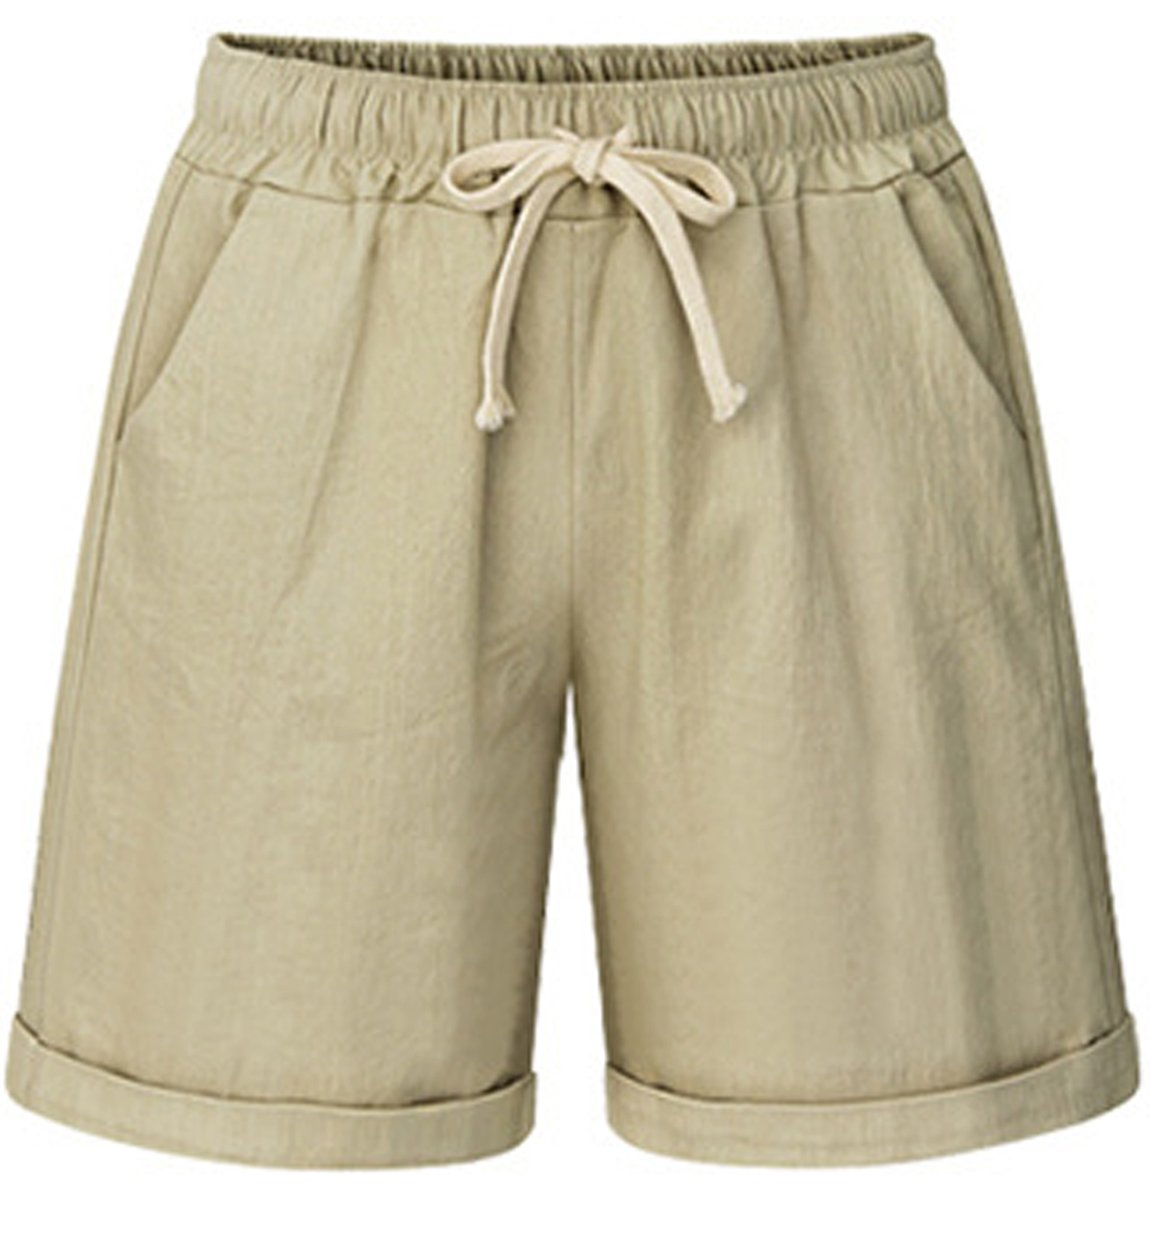 HOW'ON Women's Elastic Waist Casual Comfy Cotton Linen Beach Shorts with Drawstring Khaki M